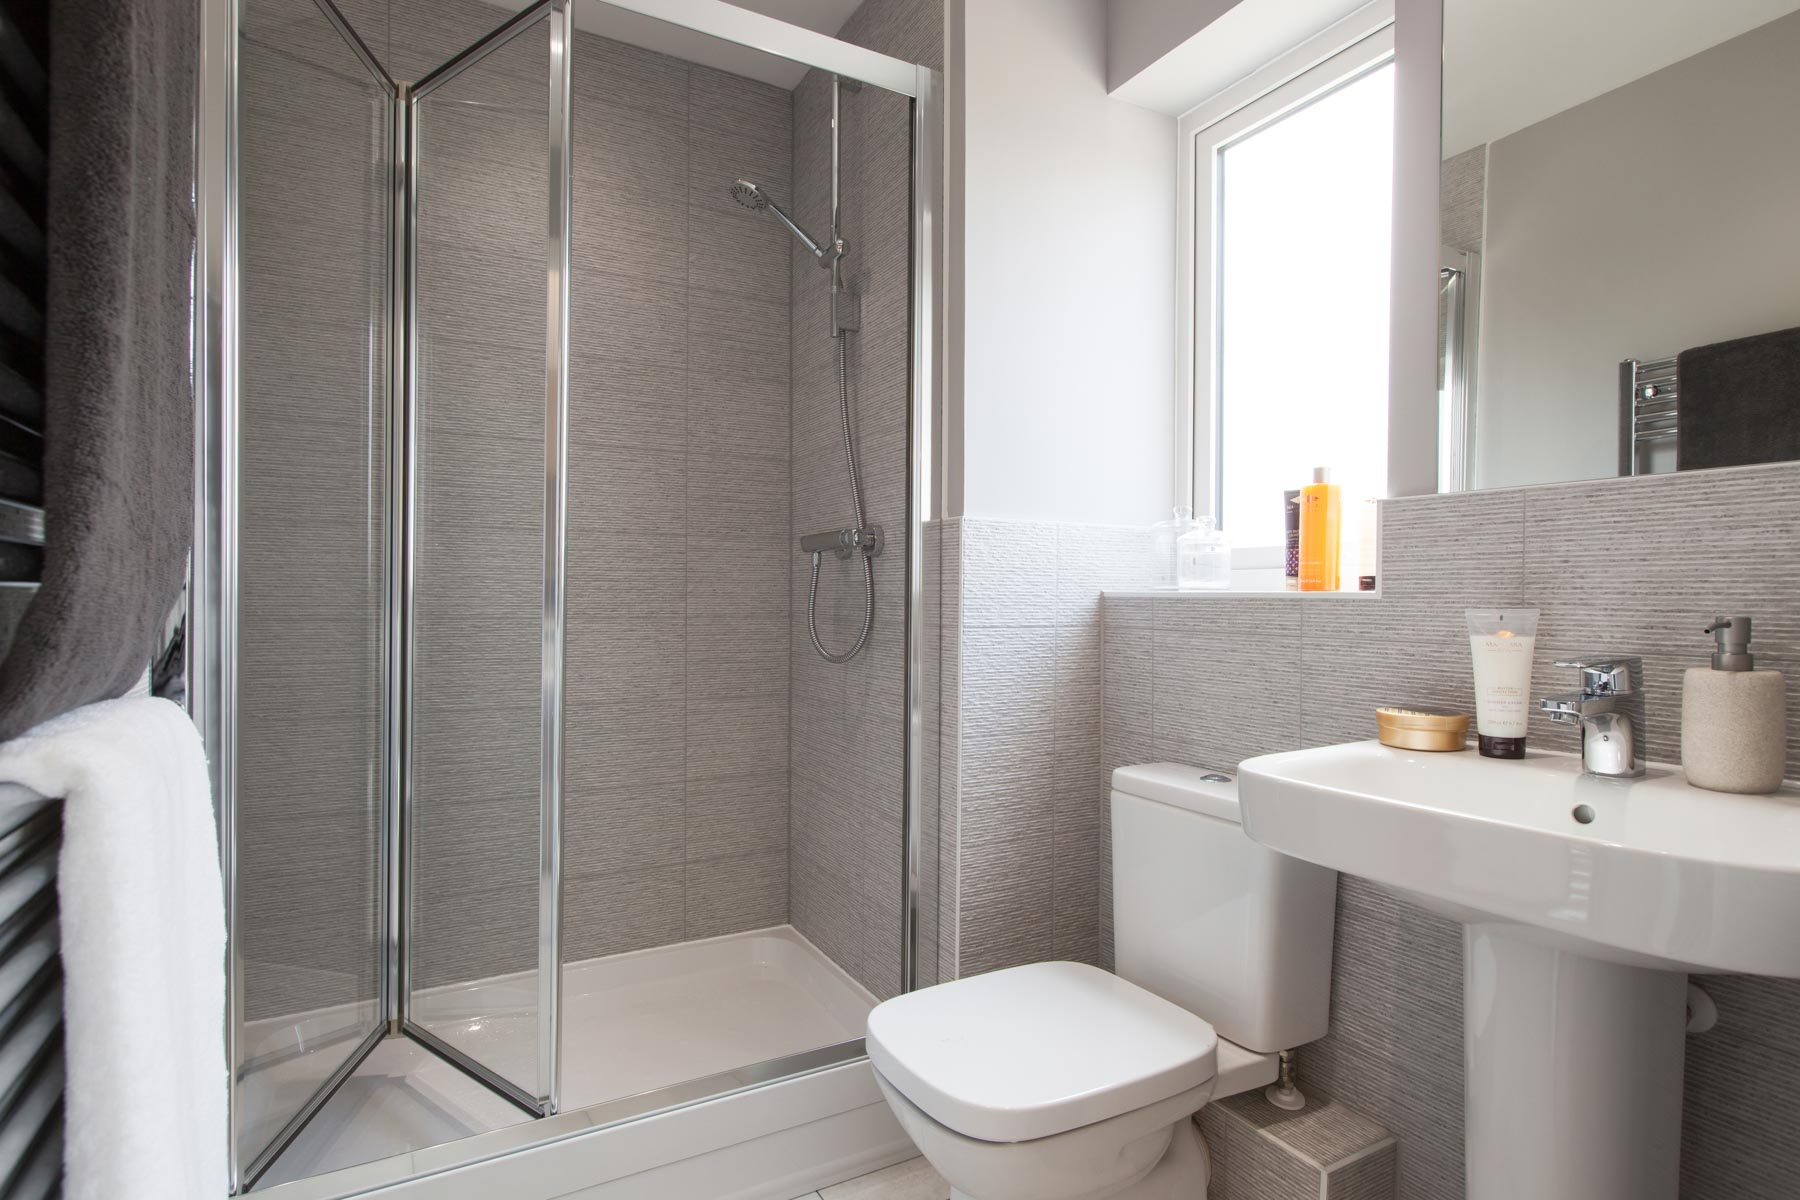 TWEL_Whitmore Park_PC41_Danbury_ En suite